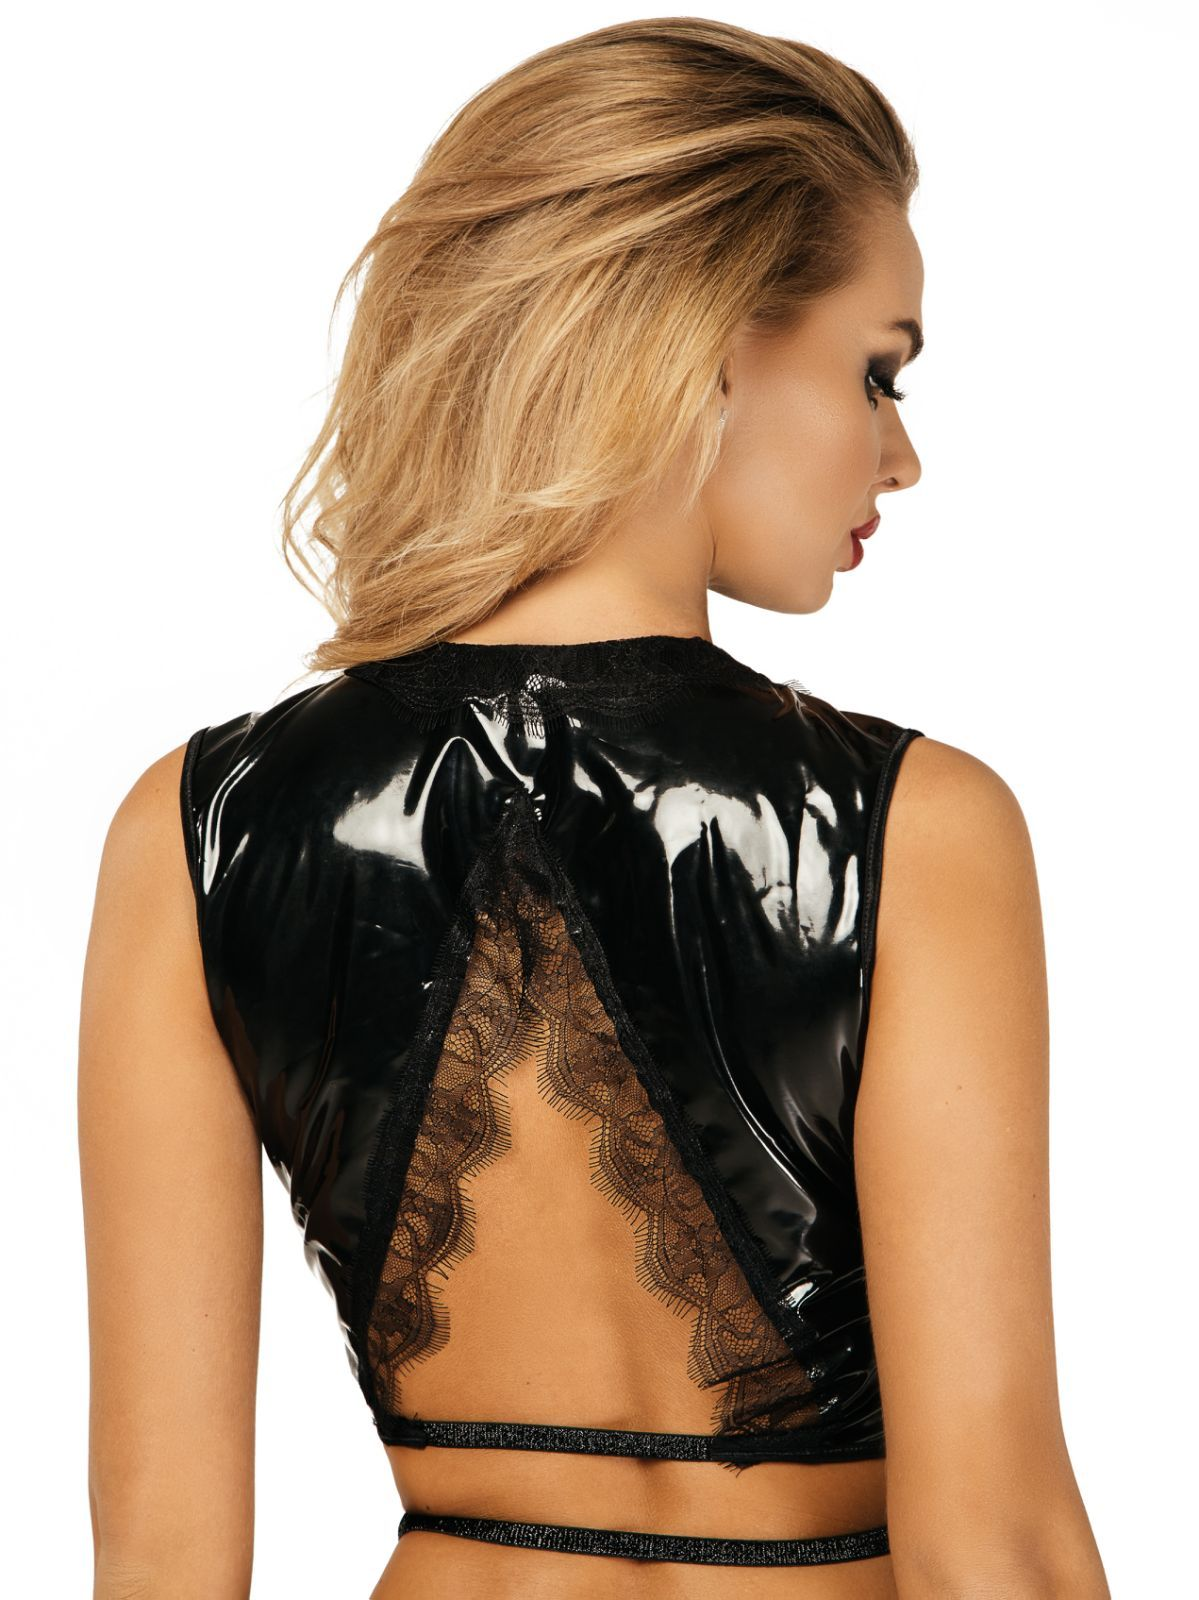 Patent vinyl vest with lace